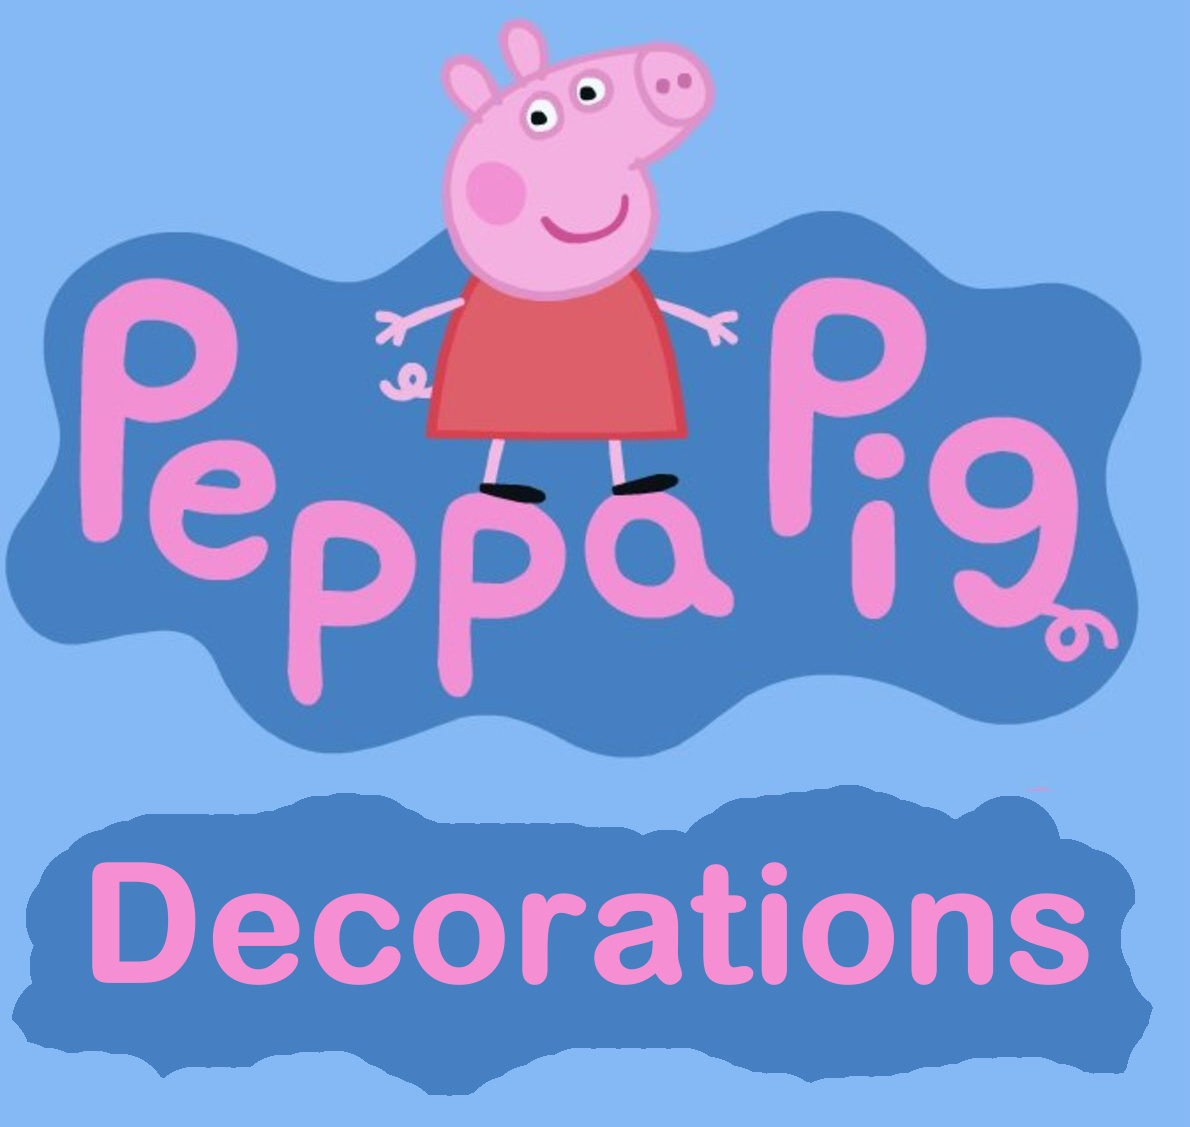 Peppa Pig Decorations